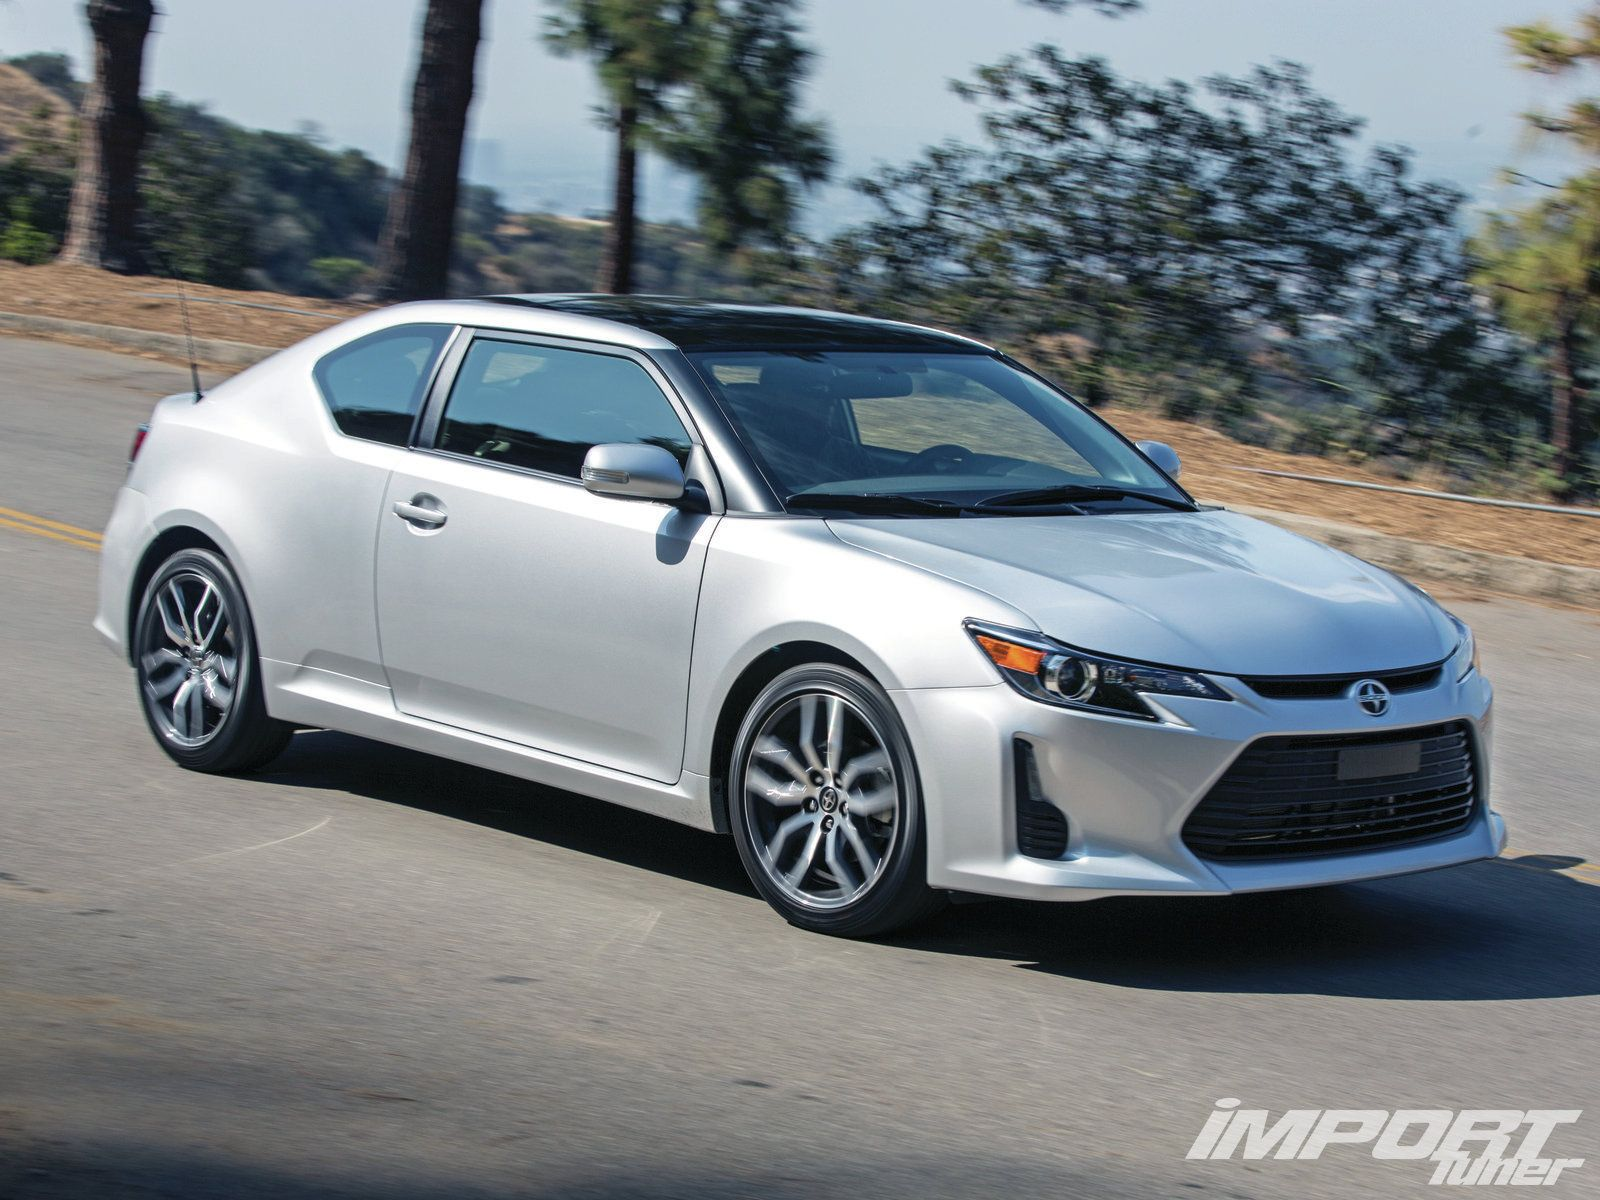 2014 Scion Tc #4